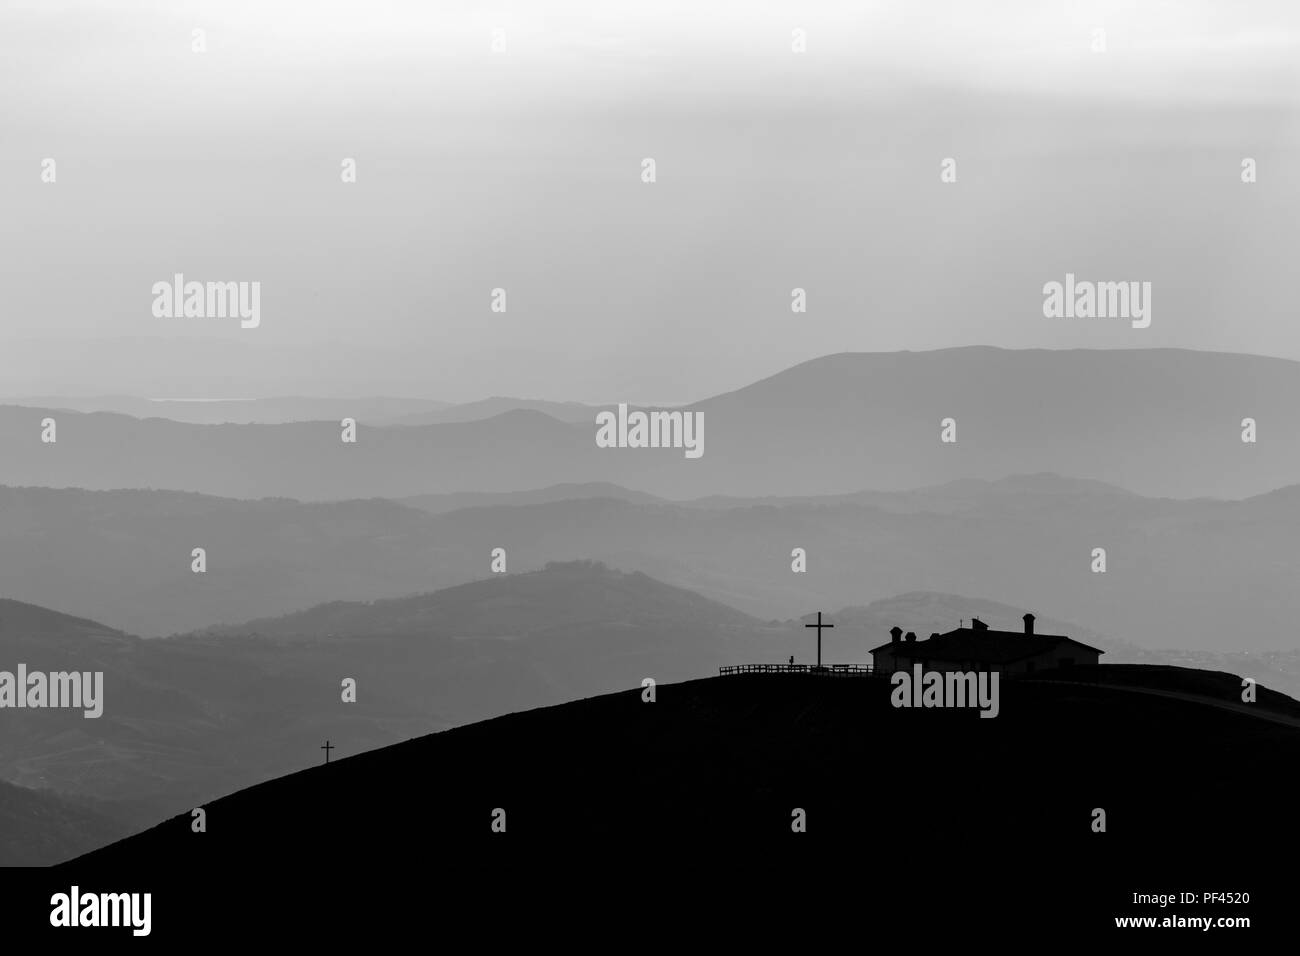 View of Serrasanta hermitage (Umbria, Italy) on top of a mountain, with various others mountains layers in the background - Stock Image